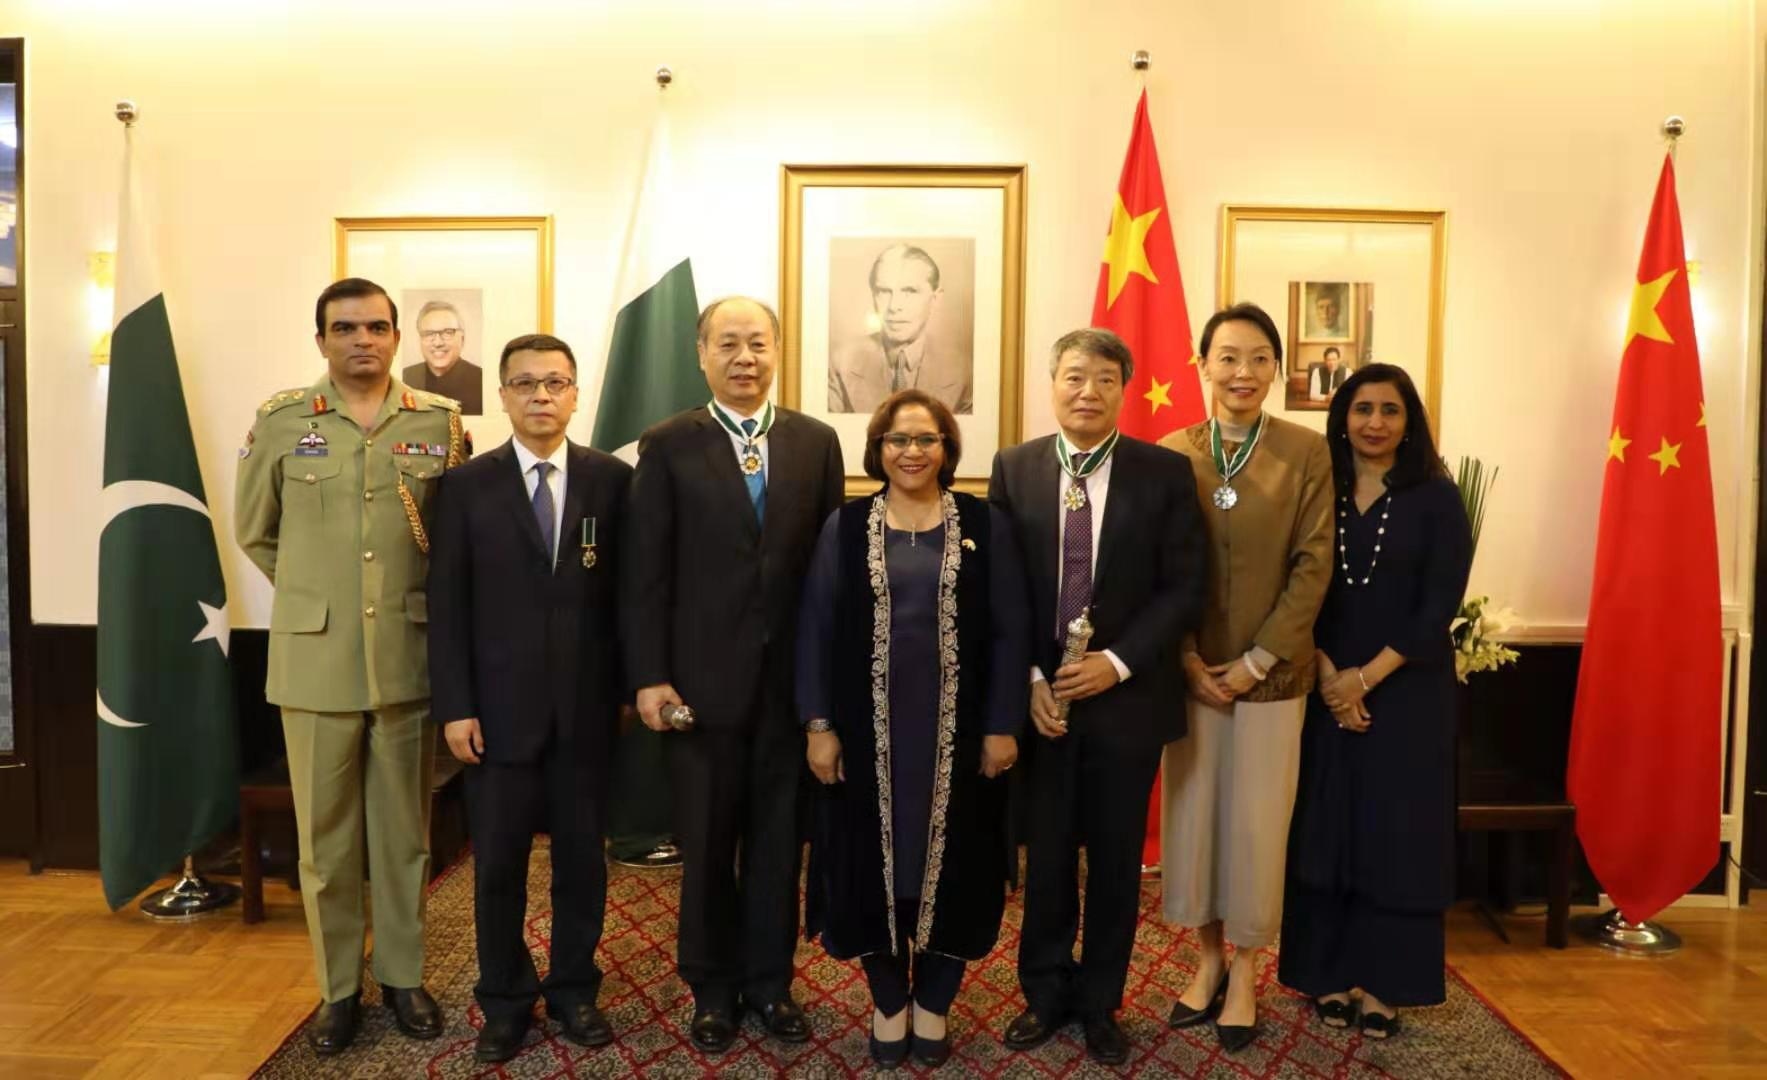 Pakistan confers civil awards on 4 Chinese nationals